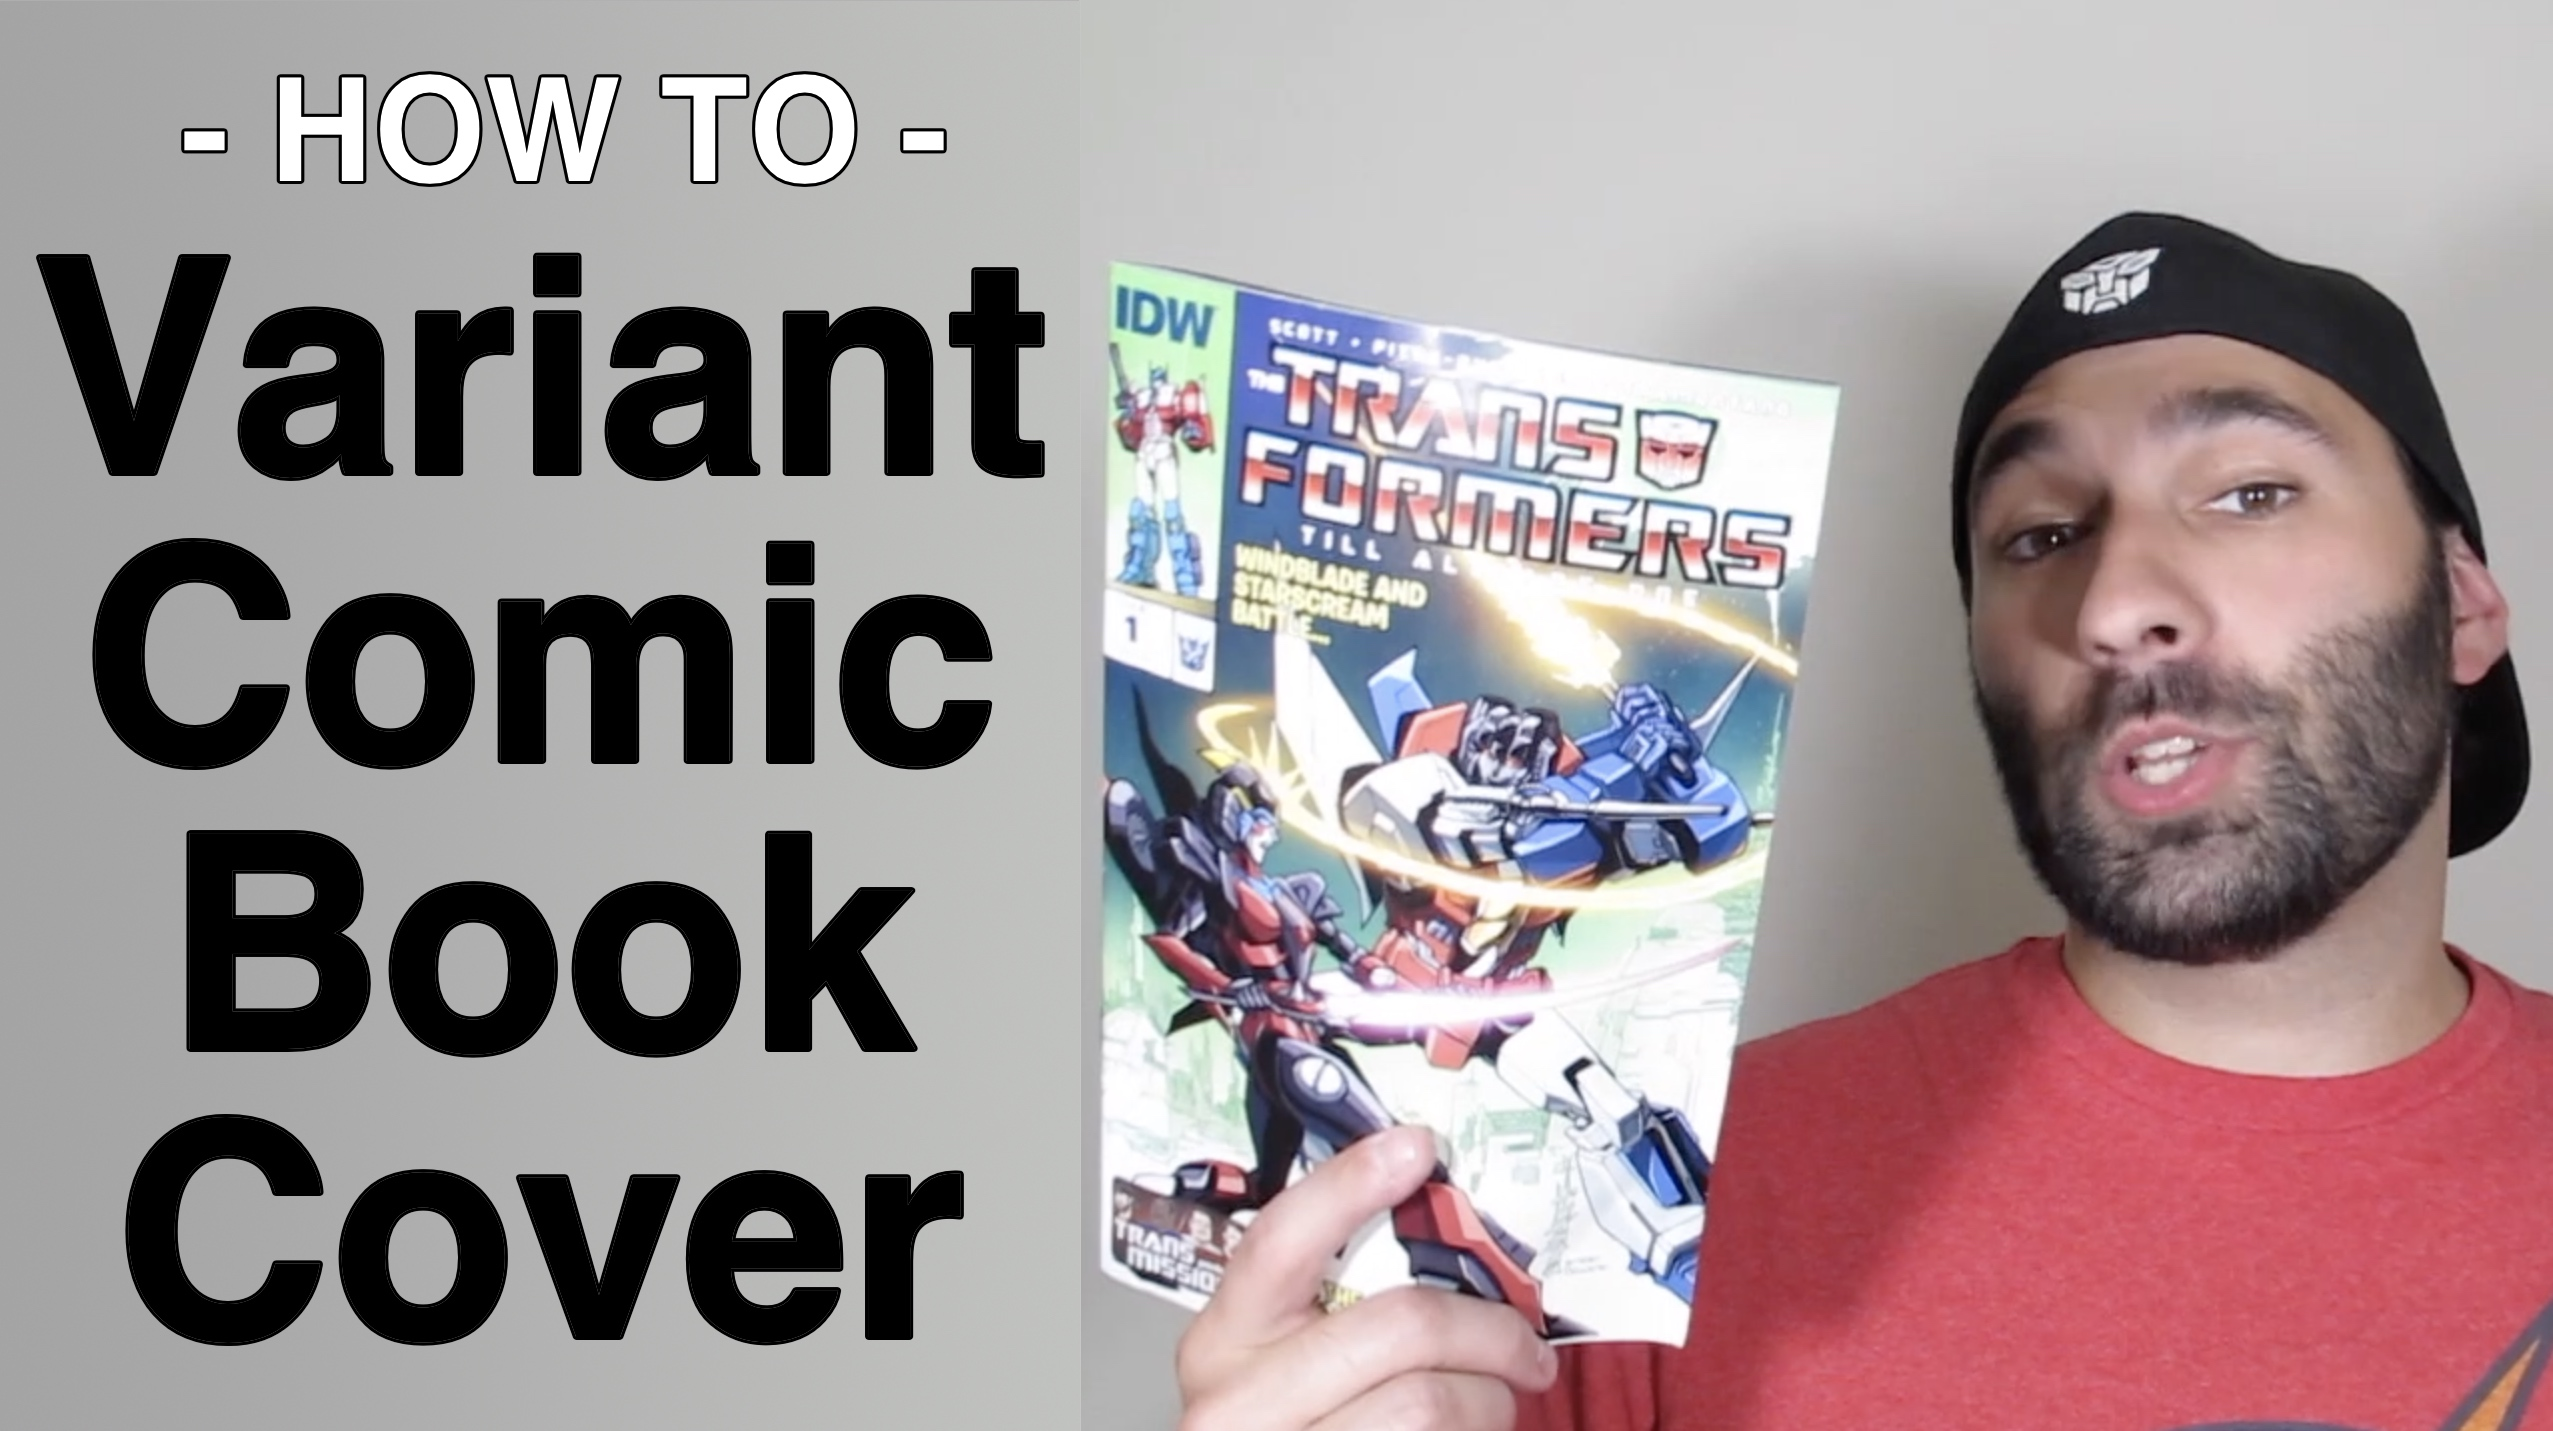 Create A Variant Comic Book Cover